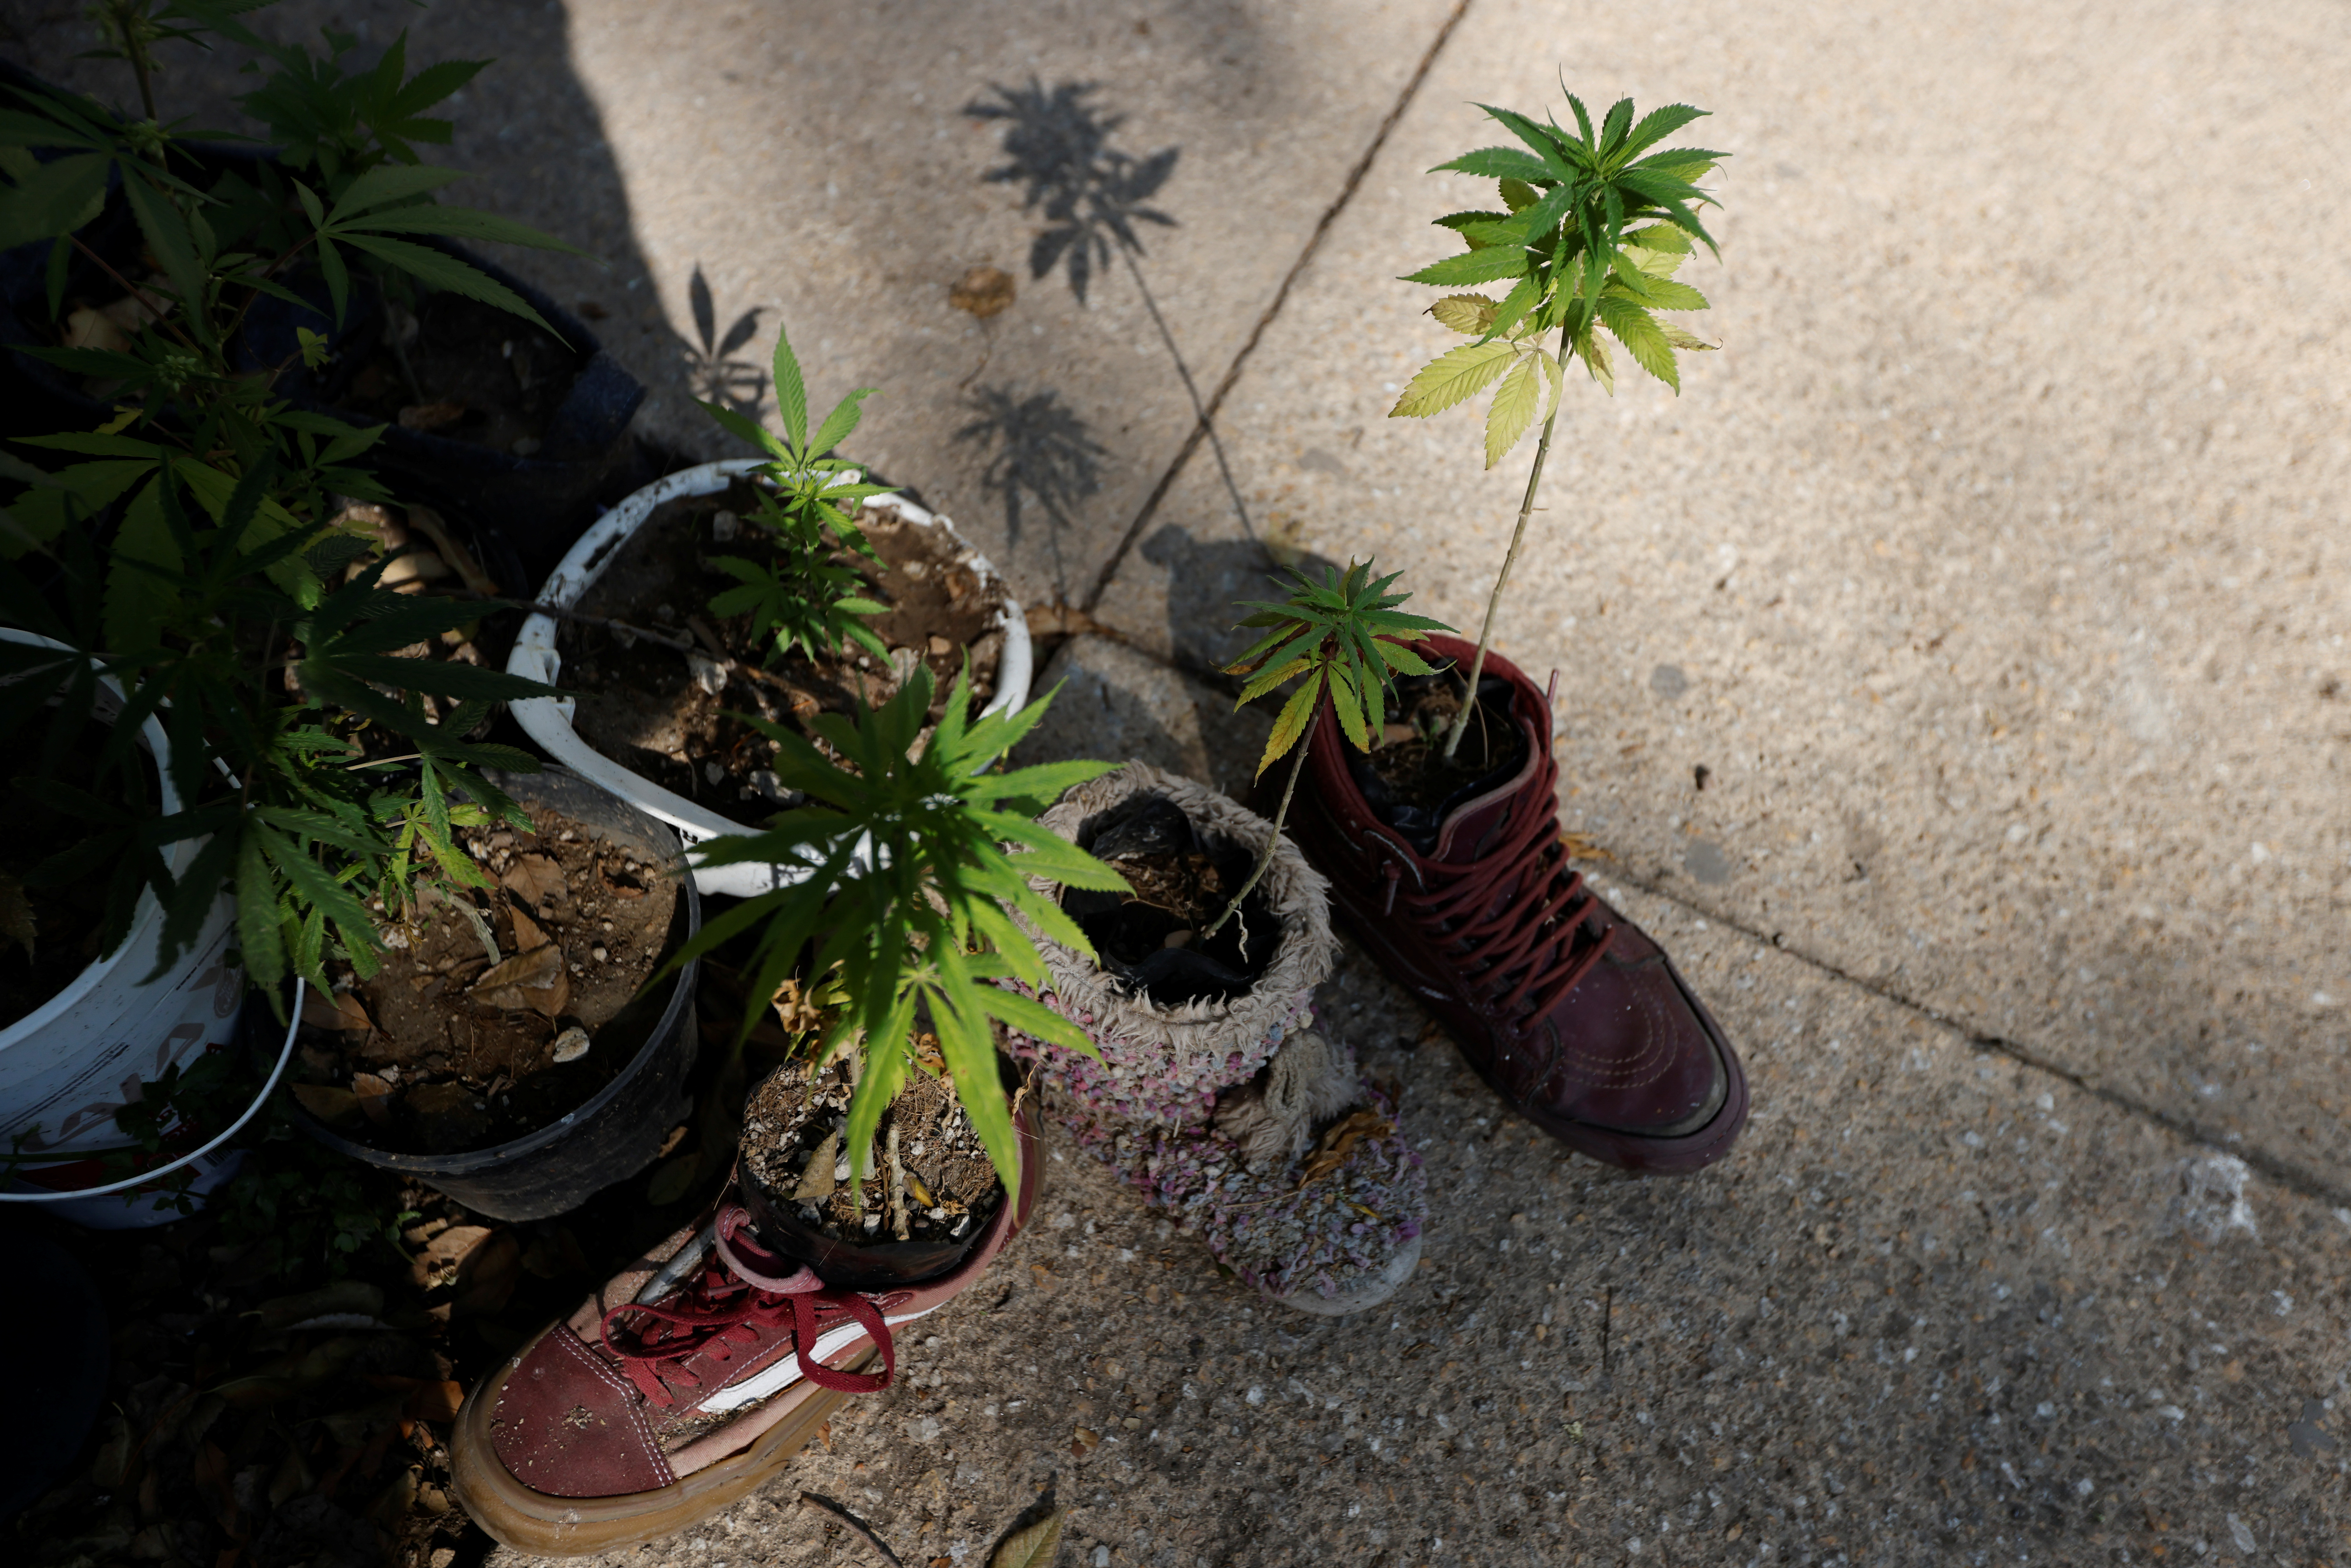 Marijuana plants placed in shoes are seen next to Mexico